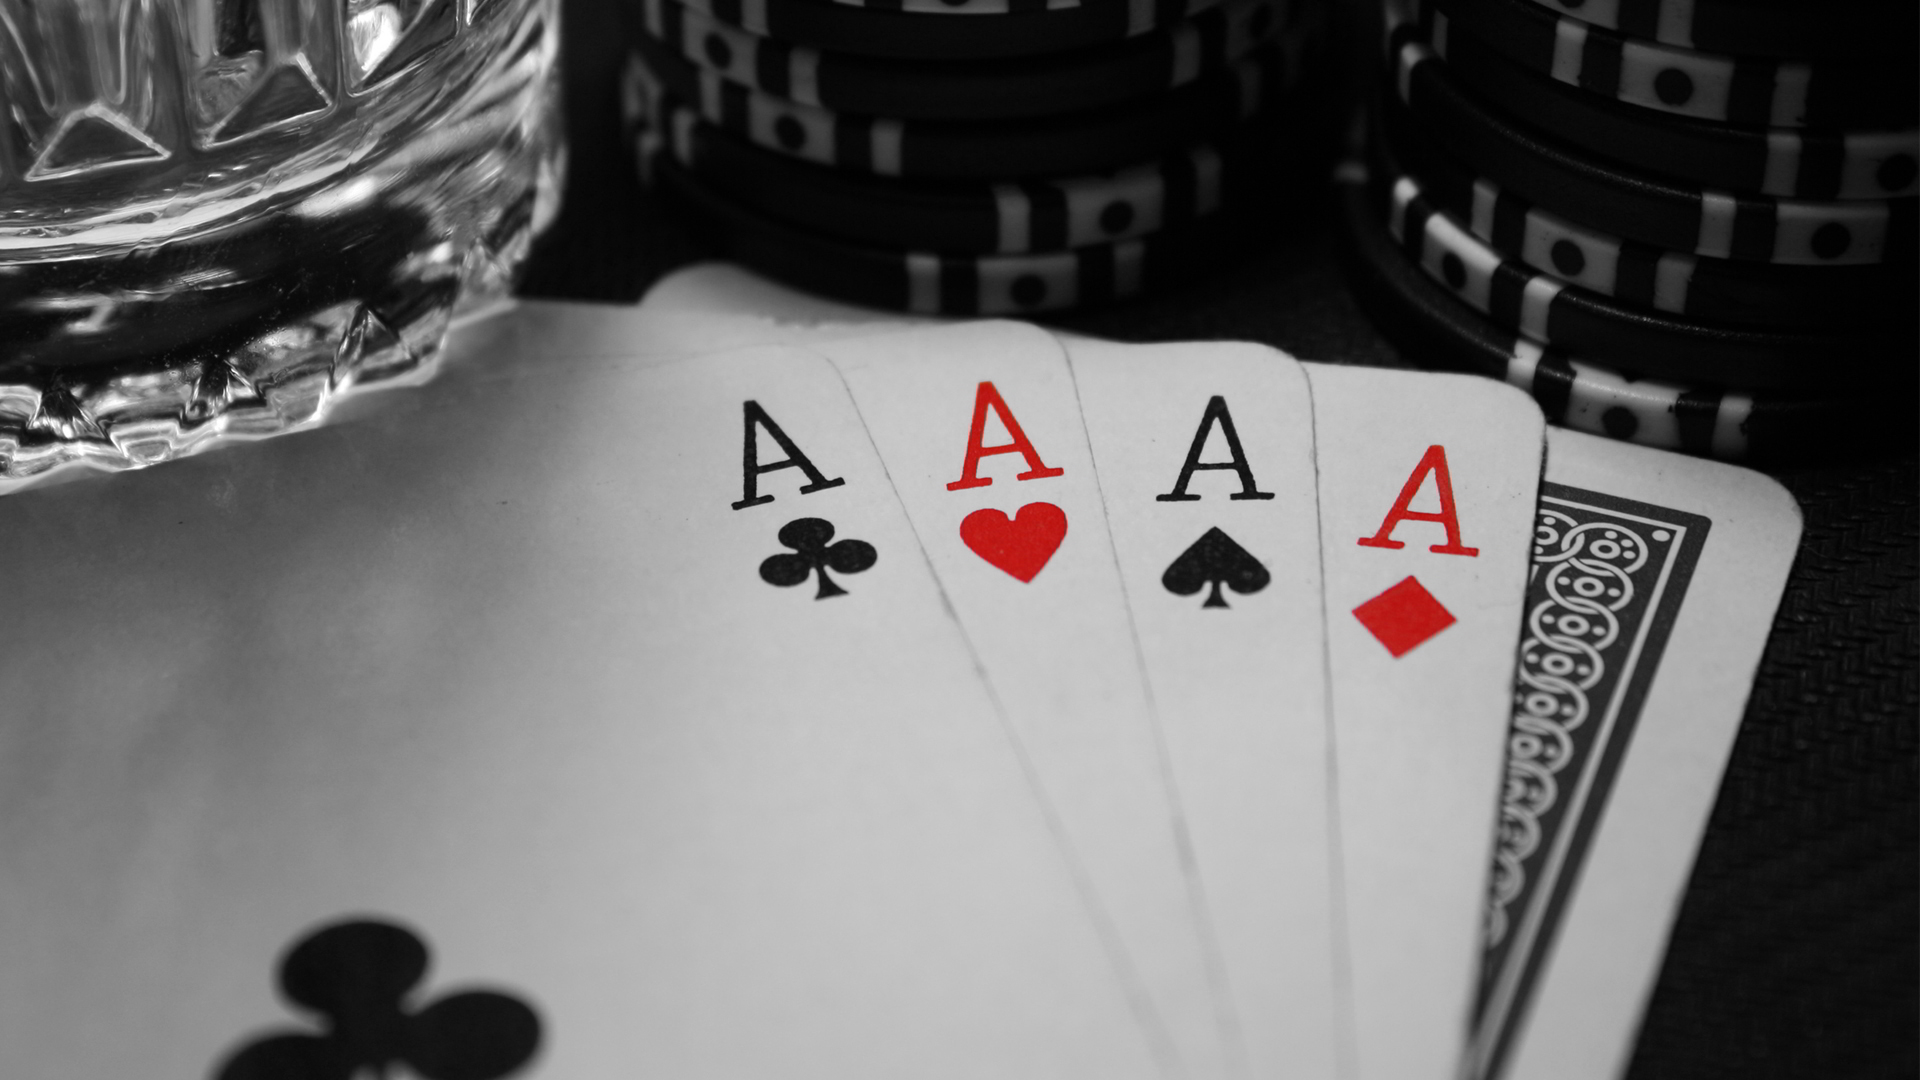 Approaches Pokertracker Vs Holdem Supervisor Could Make You Invincible